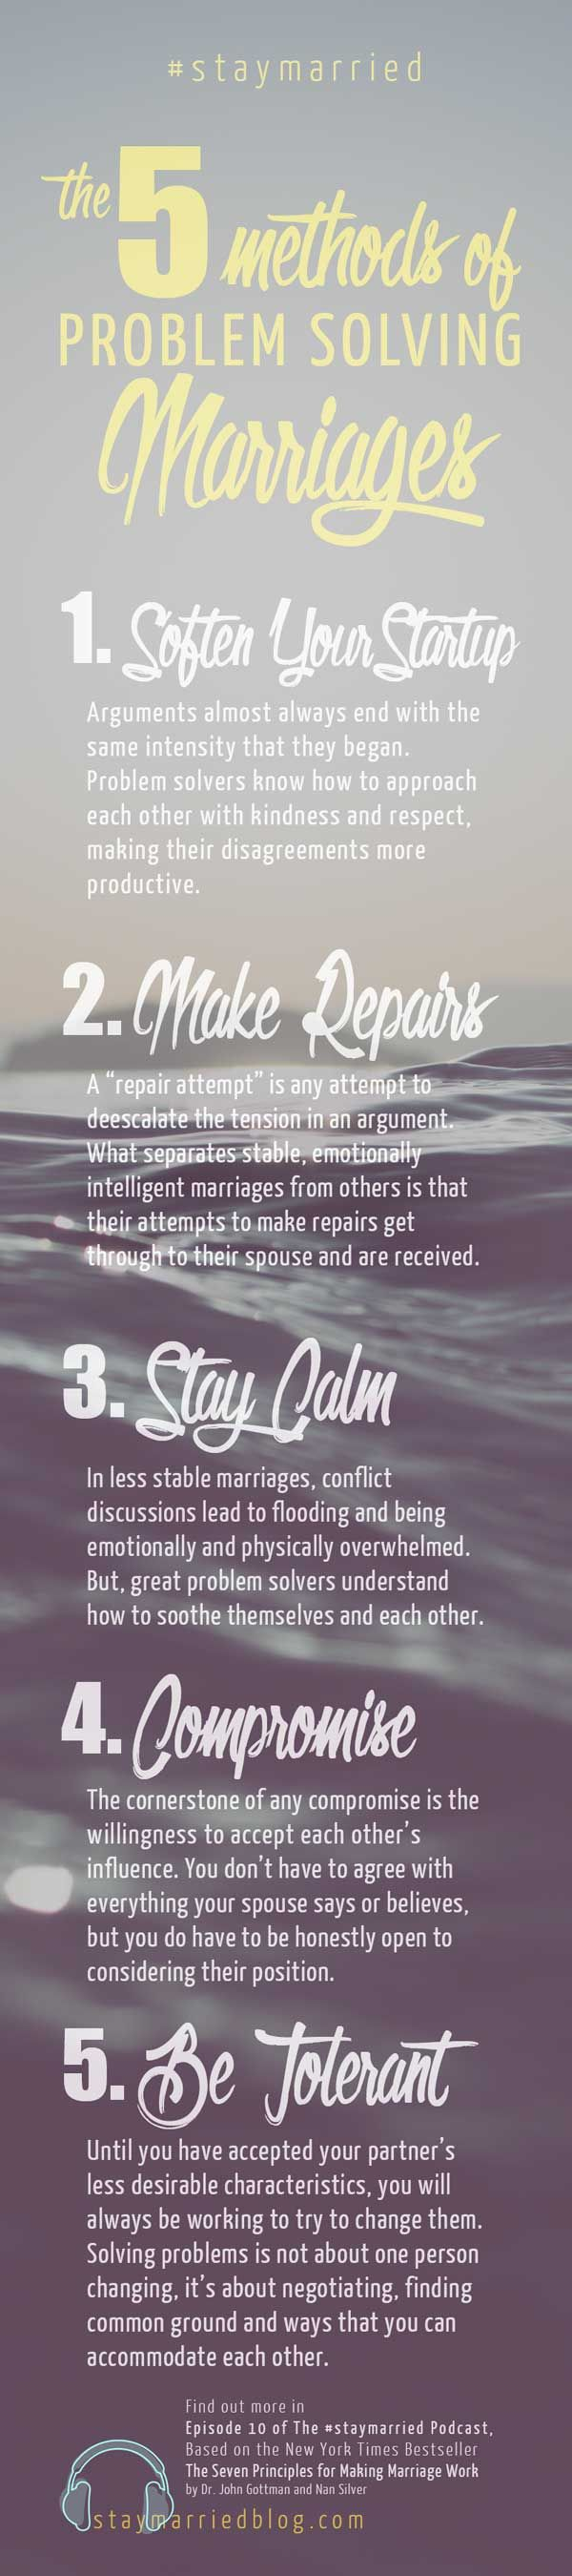 5 Methods of Problem Solving Tall - Episode 10 of The #staymarried Podcast, a series based on The Seven Principles for Making Marriage Work by Dr. John Gottman